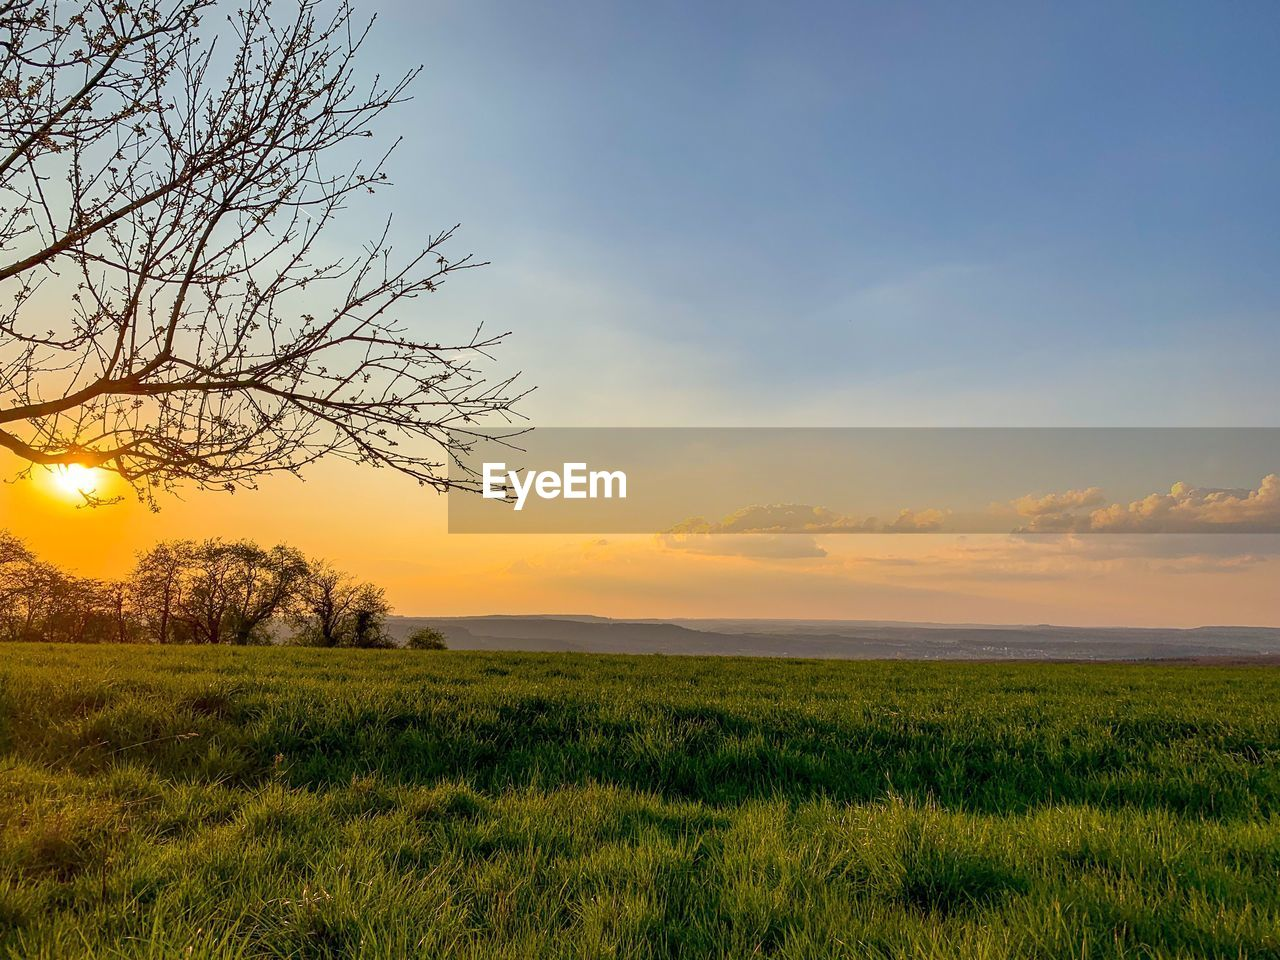 sky, scenics - nature, beauty in nature, plant, tranquil scene, tranquility, landscape, sunset, environment, field, growth, grass, land, cloud - sky, non-urban scene, tree, nature, green color, no people, horizon, sun, outdoors